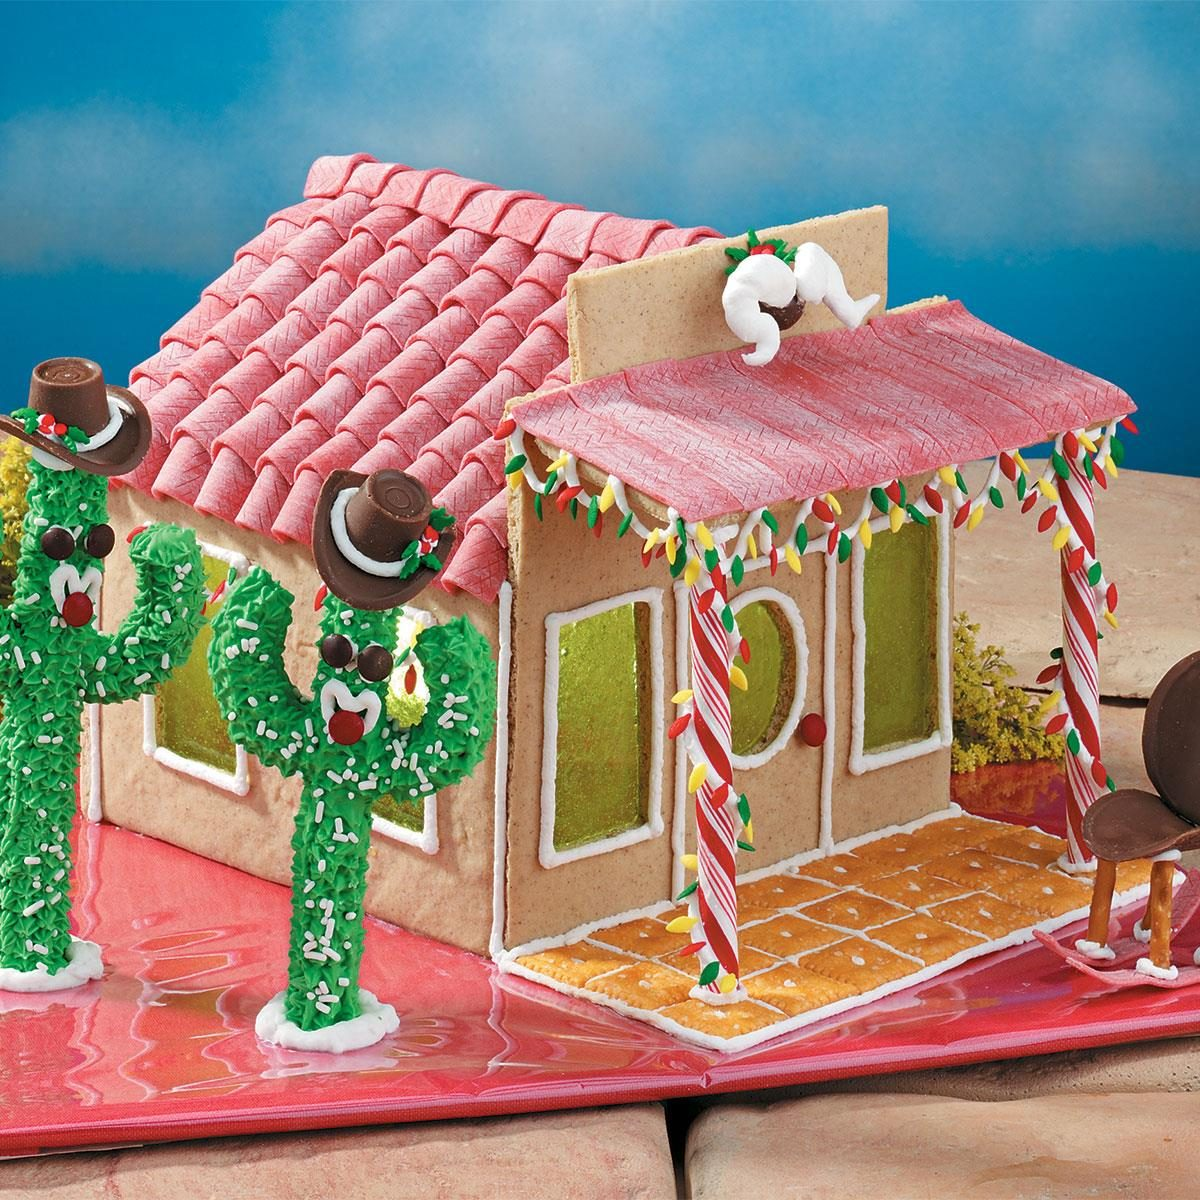 Fullsize Of Gingerbread House Ideas